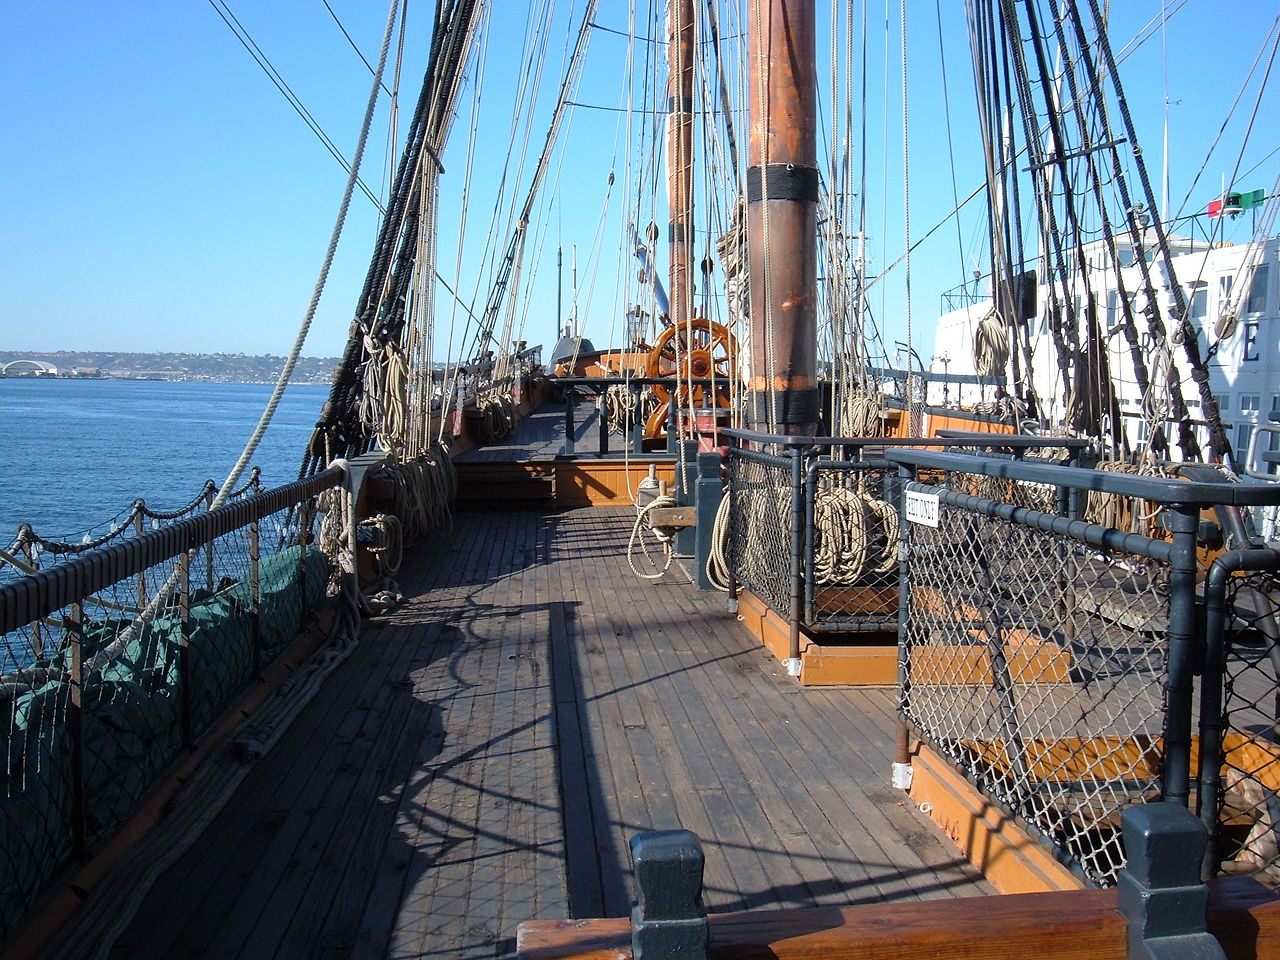 File Hms Surprise Replica Ship Main Deck 4 Jpg